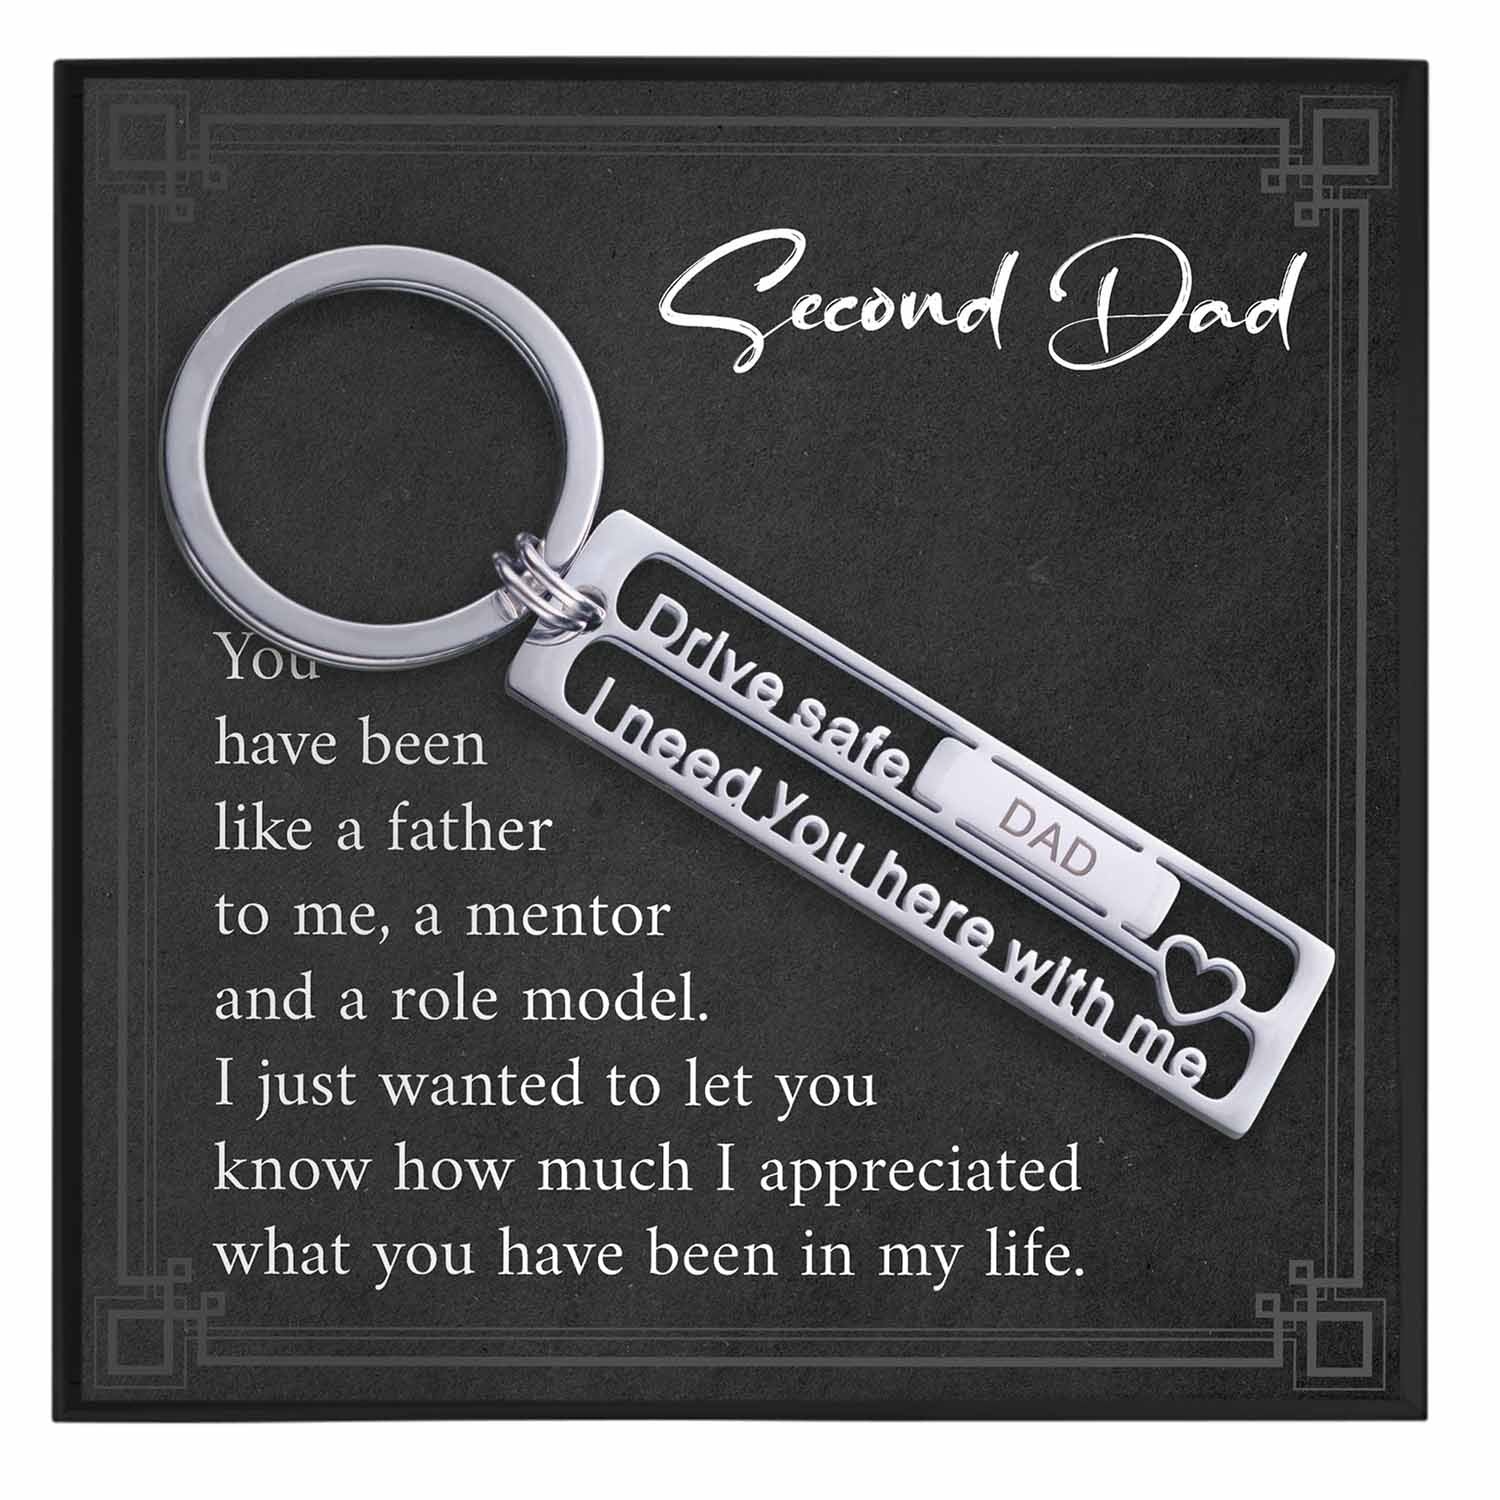 Second Dad Keychain Gift